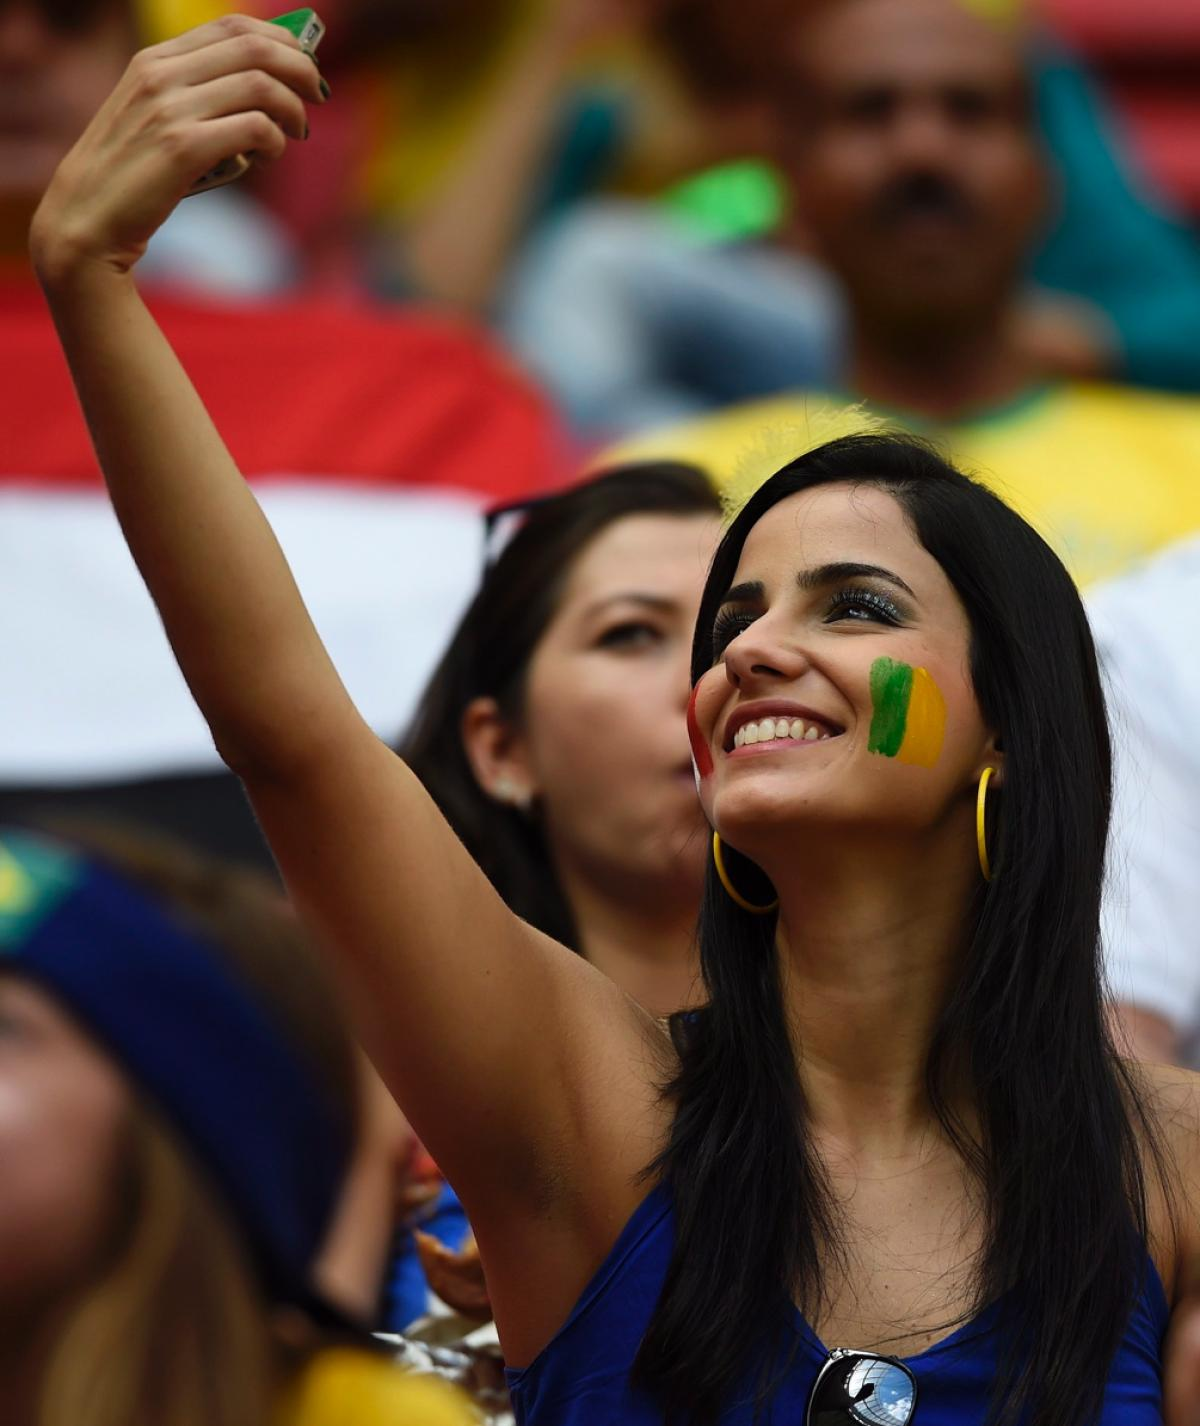 world-cup-hottest-fans-14